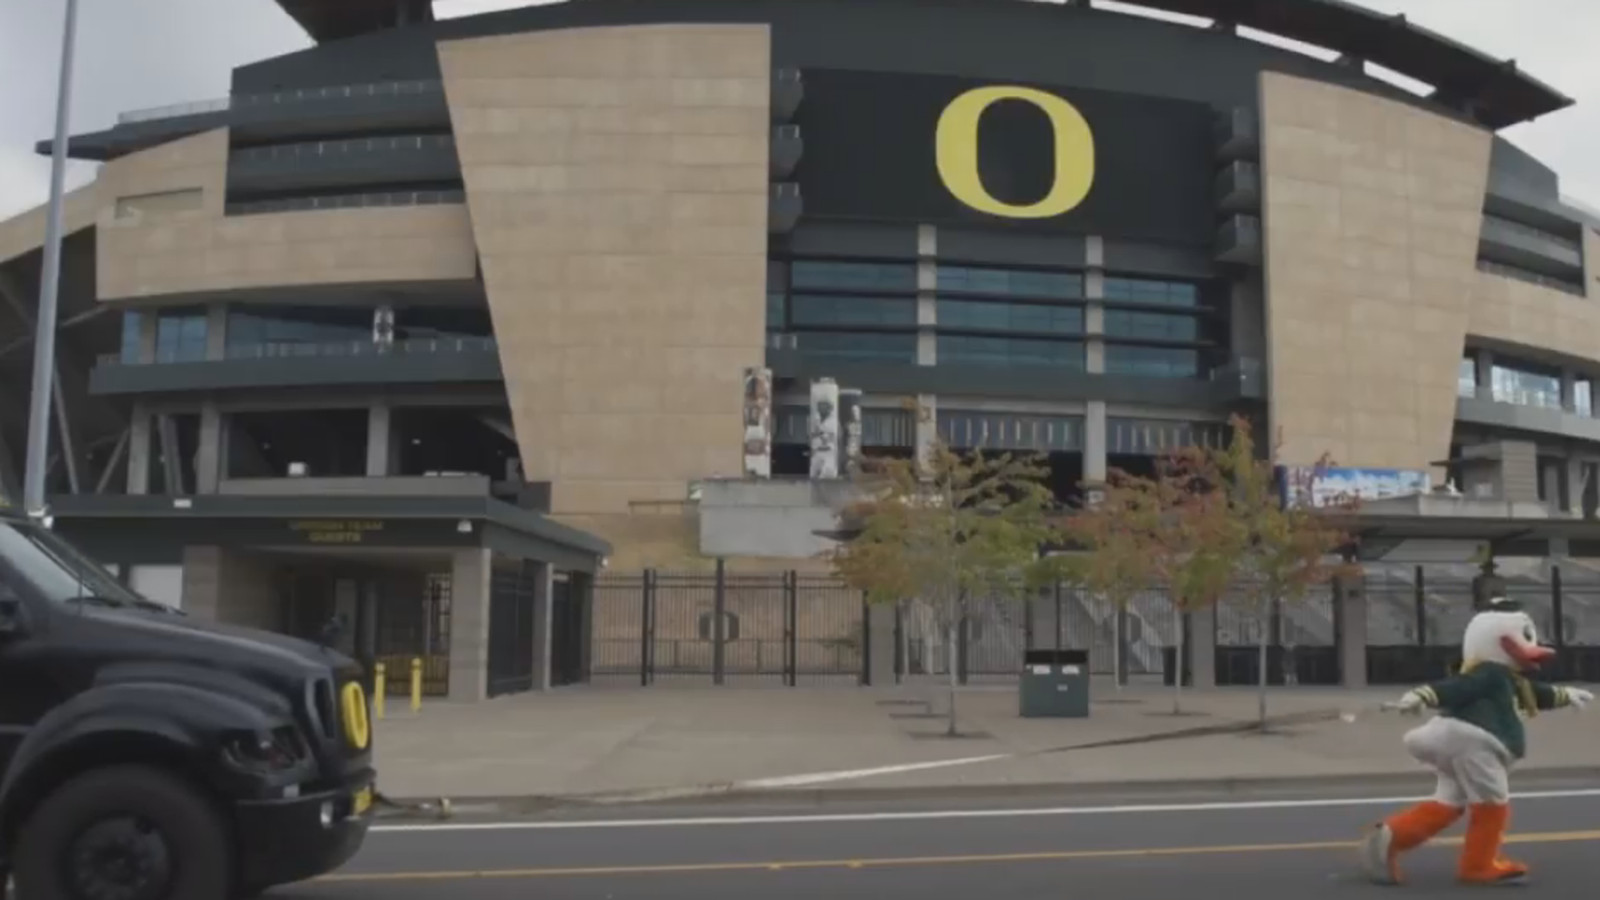 A Florida Player Used A Ducks And Trucks Metaphor To